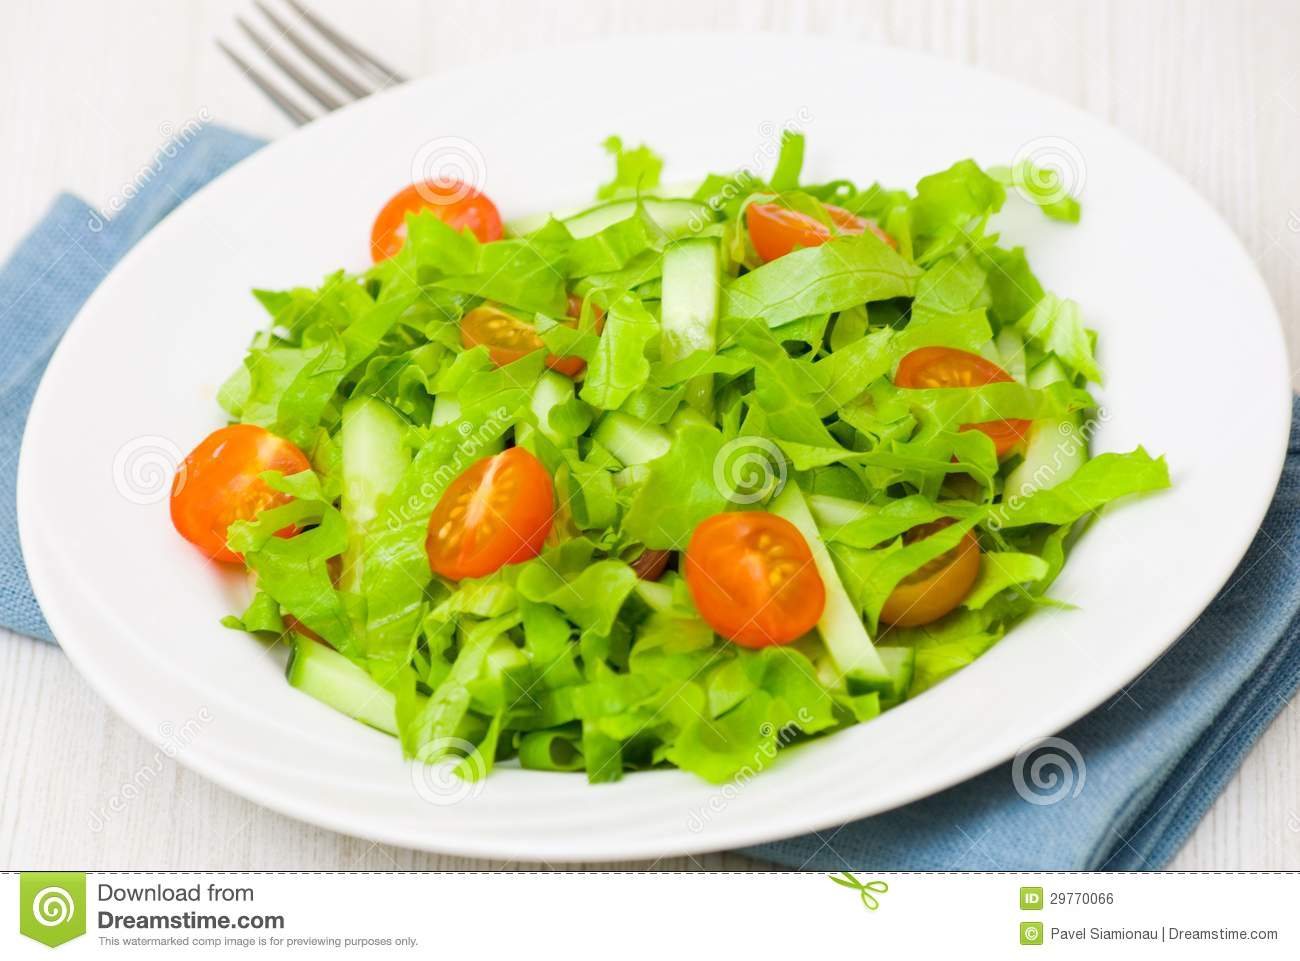 Fresh Vegetable Salad With Lettuce Tomato And Cuber Royalty Free Stock Image